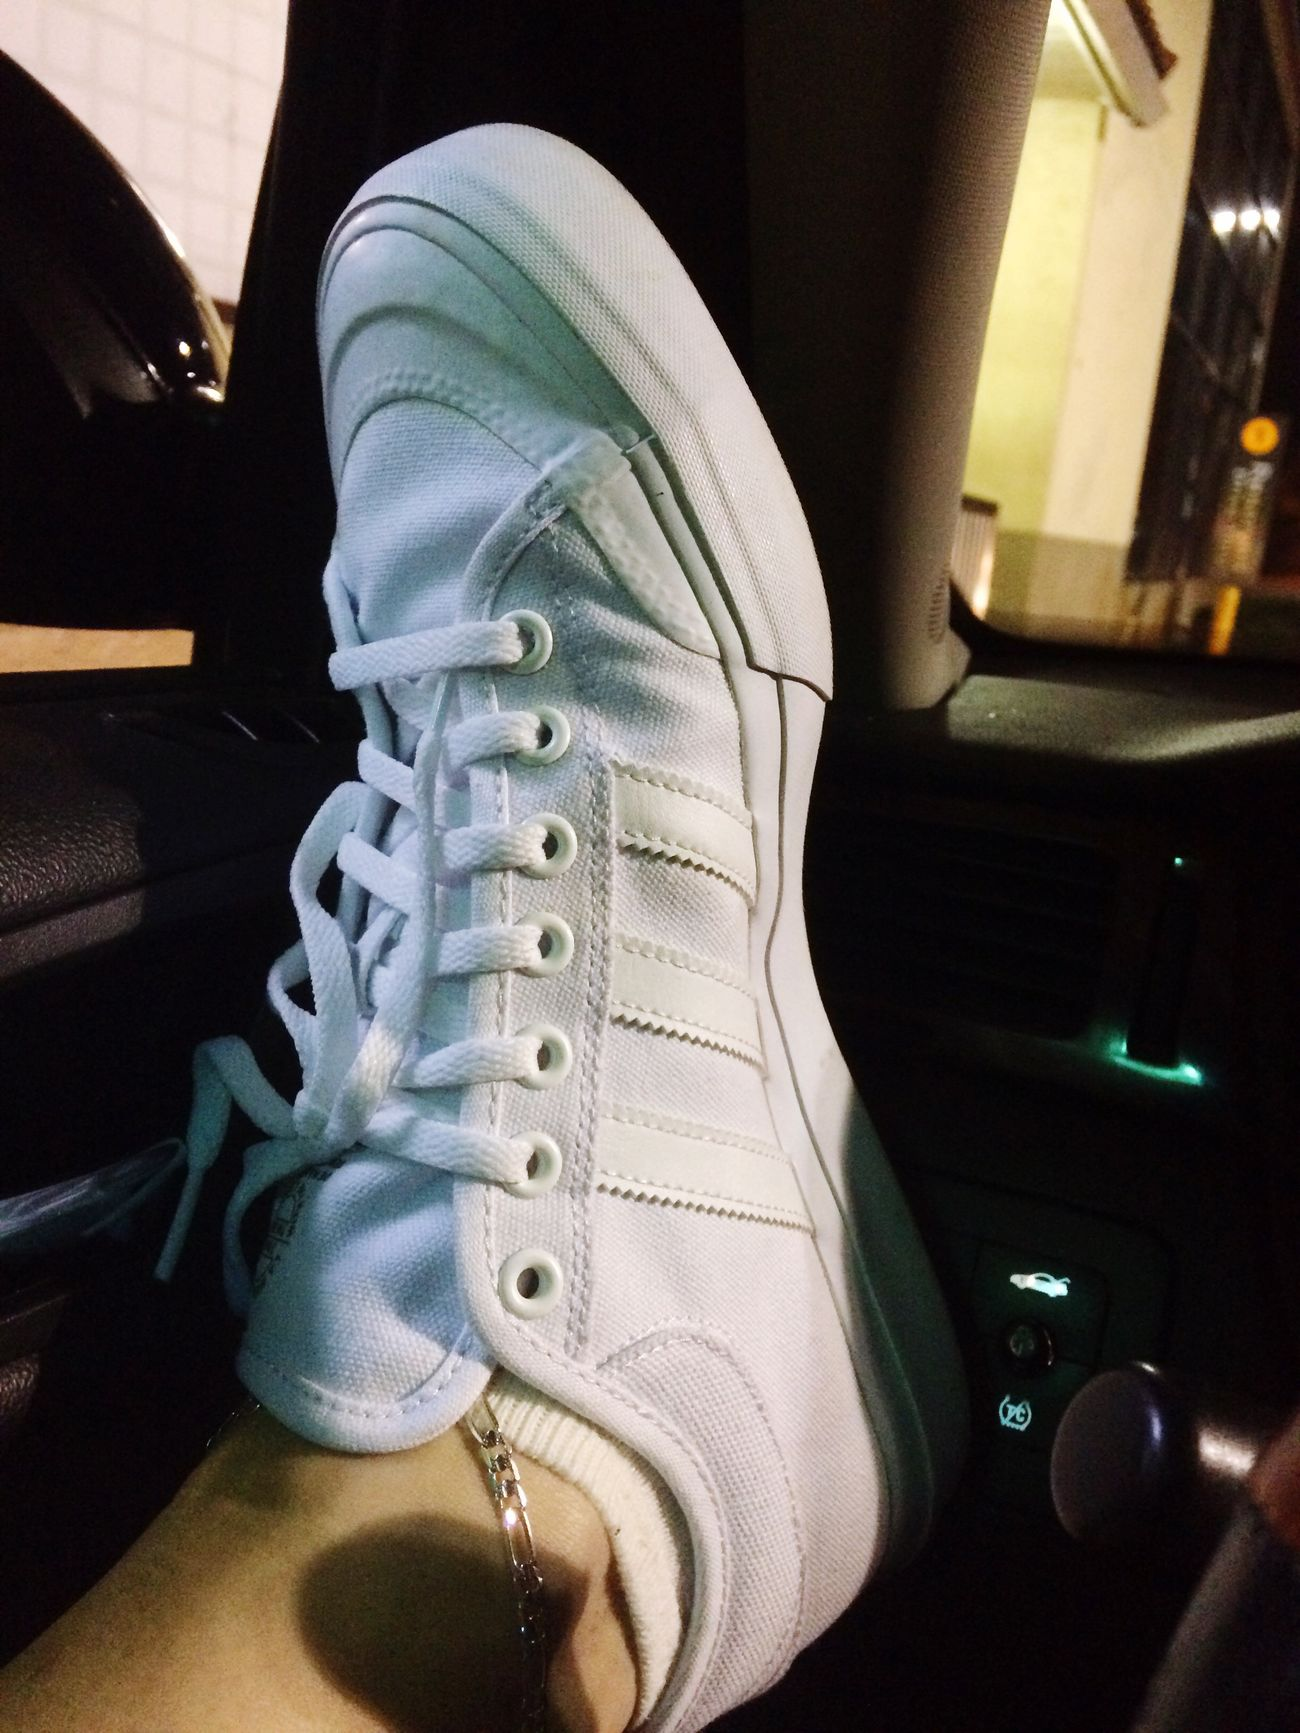 My new kicks- I was waiting for a bit and got bored... Obviously! 😋 Me Adidas My New Shoes Bored Waiting In The Car Waiting For Food Night Pic  All White Love My Adidas